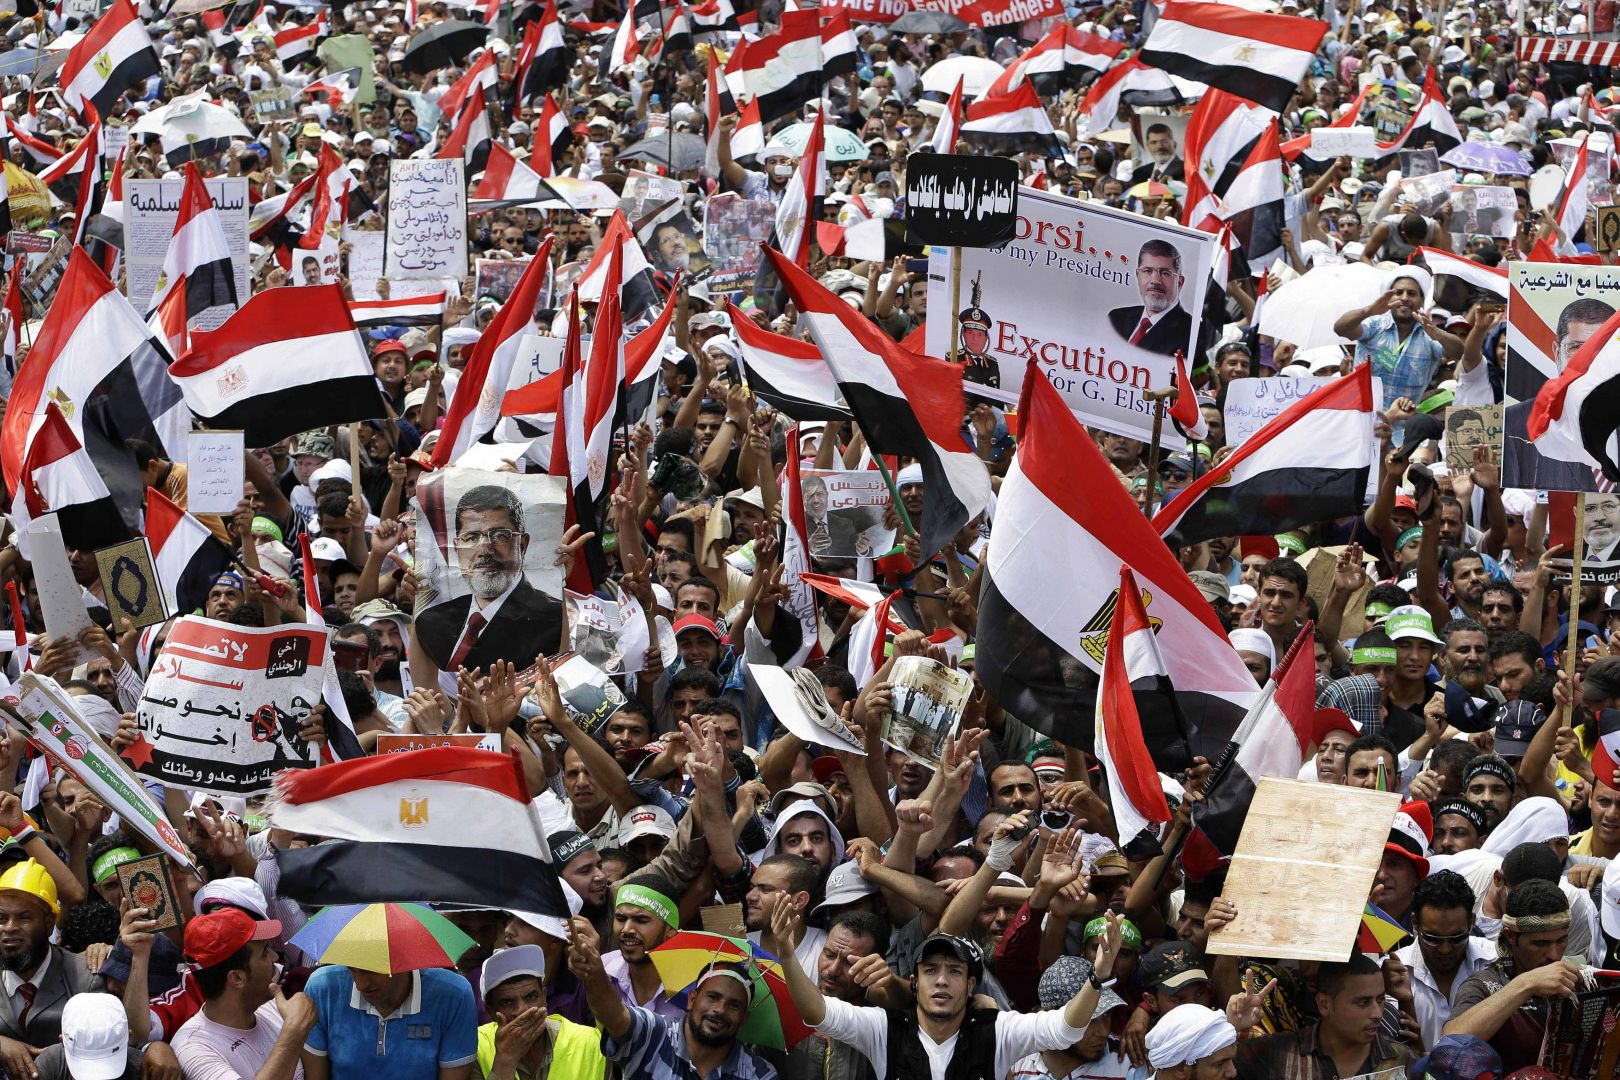 Supporters of Egypt's ousted President Mohammed Morsi wave their national flags during a demonstration at Nasr City.